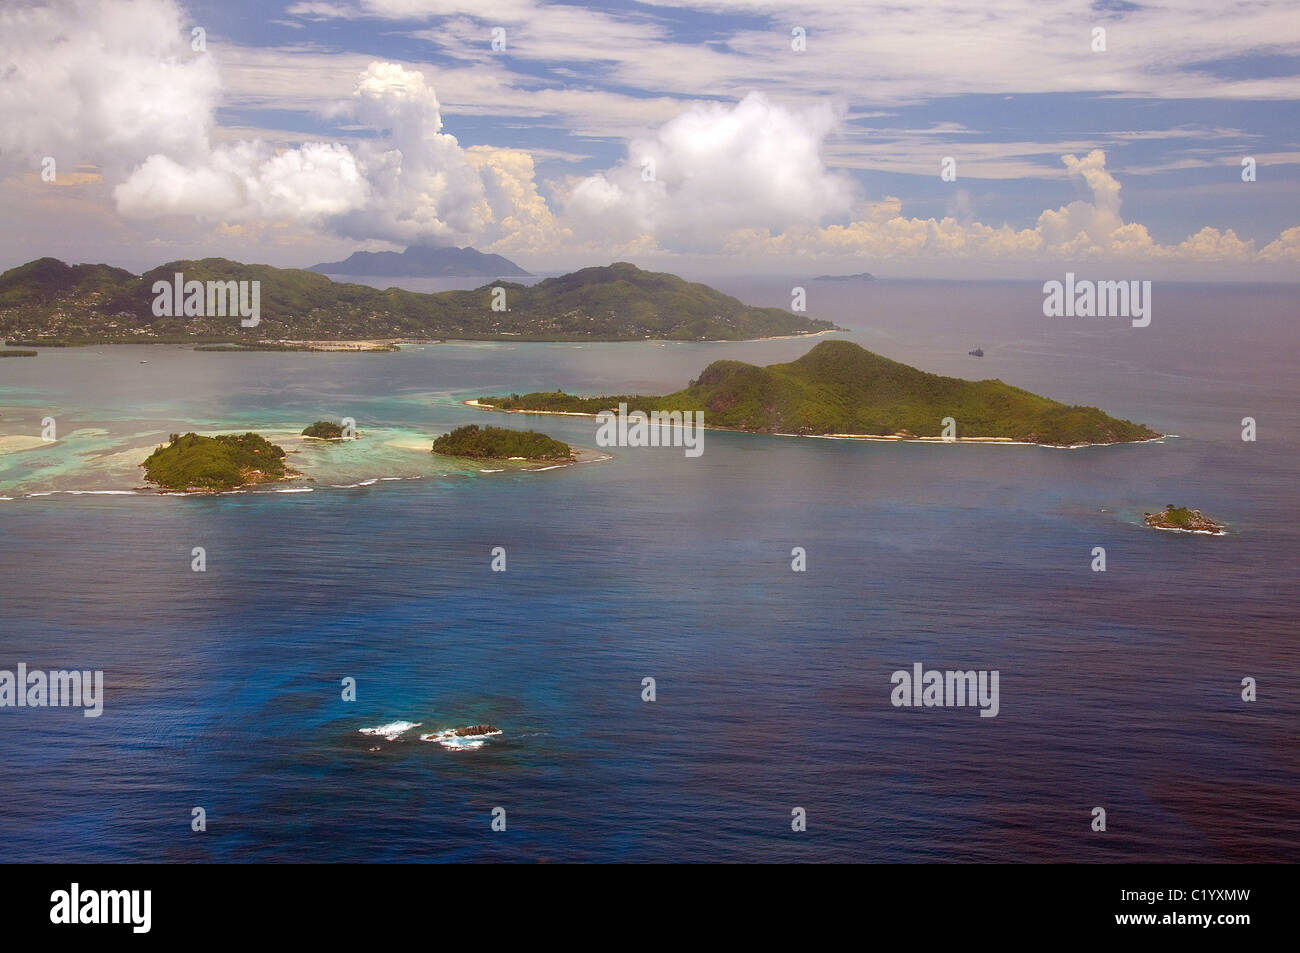 Aerial view, Island, Seychelles, Africa - Stock Image